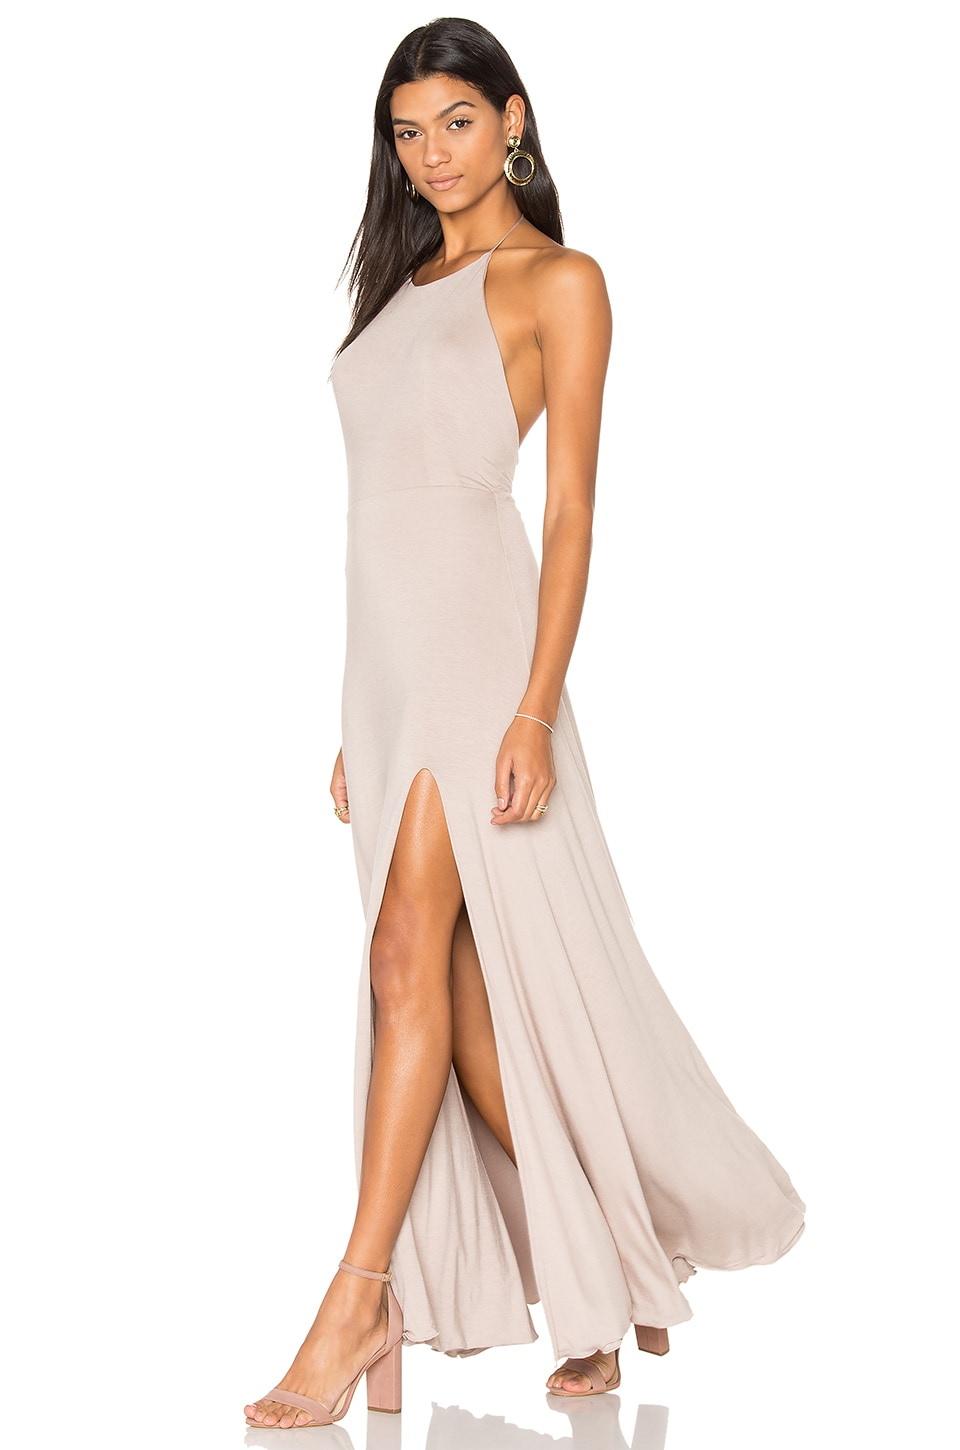 De Lacy Nikki Dress in Taupe